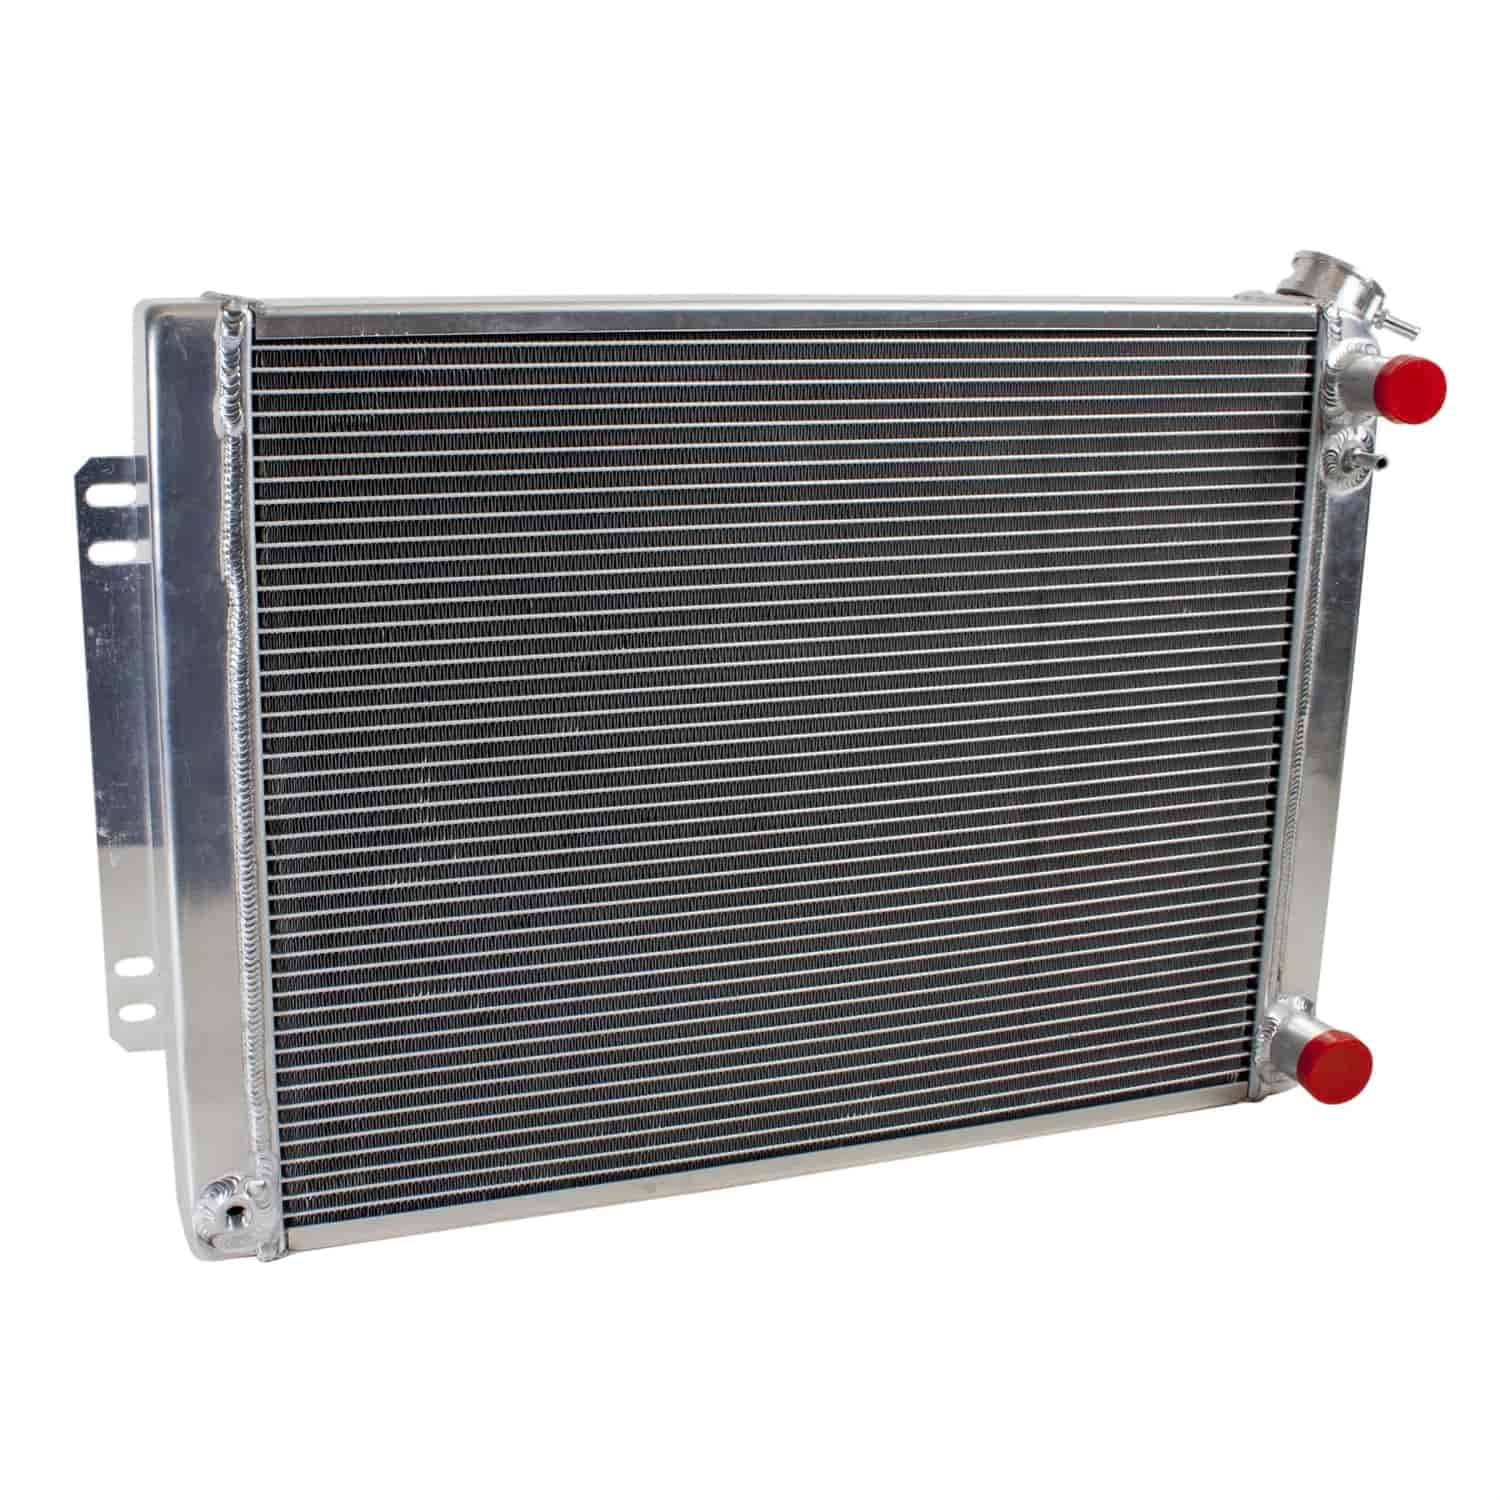 Griffin Radiators 8-00009-LS